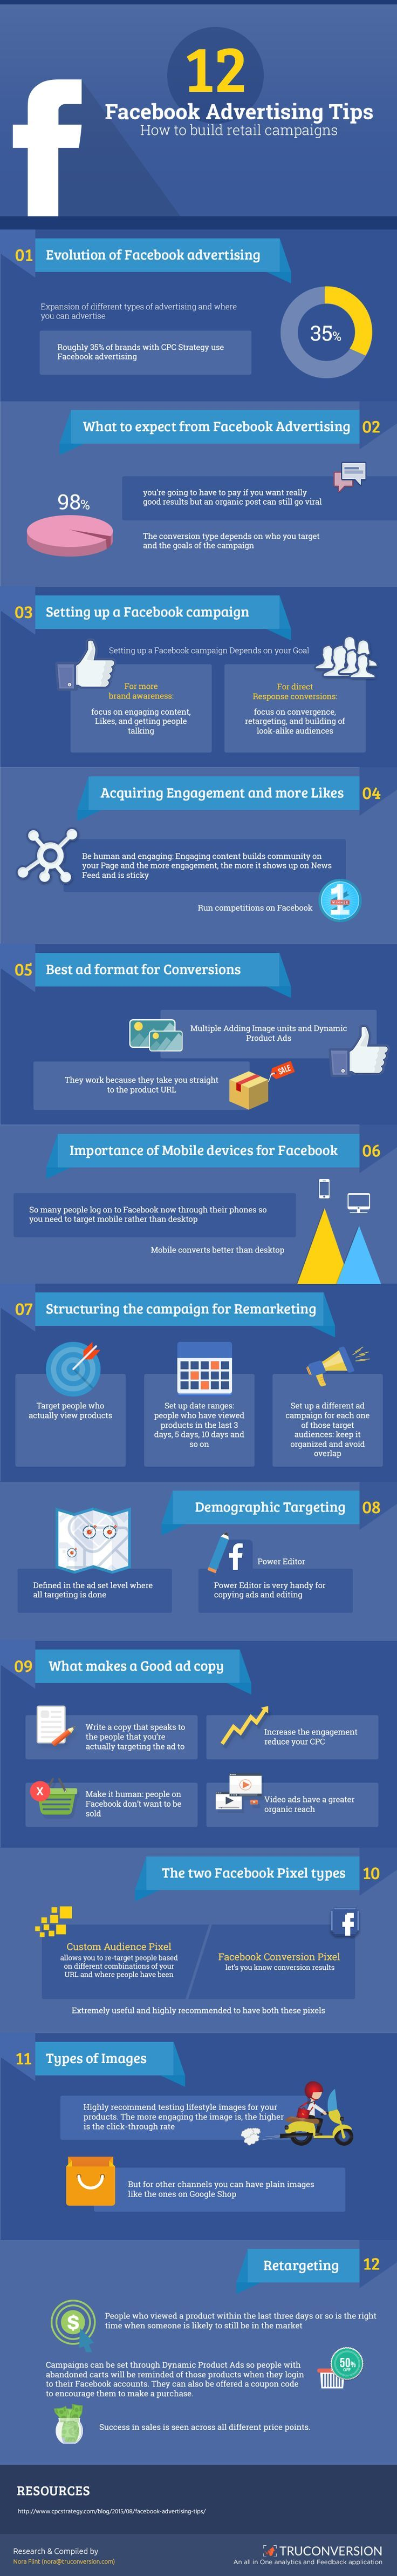 12 Tips On How To Build Retail Campaigns On #Facebook (Infographic)